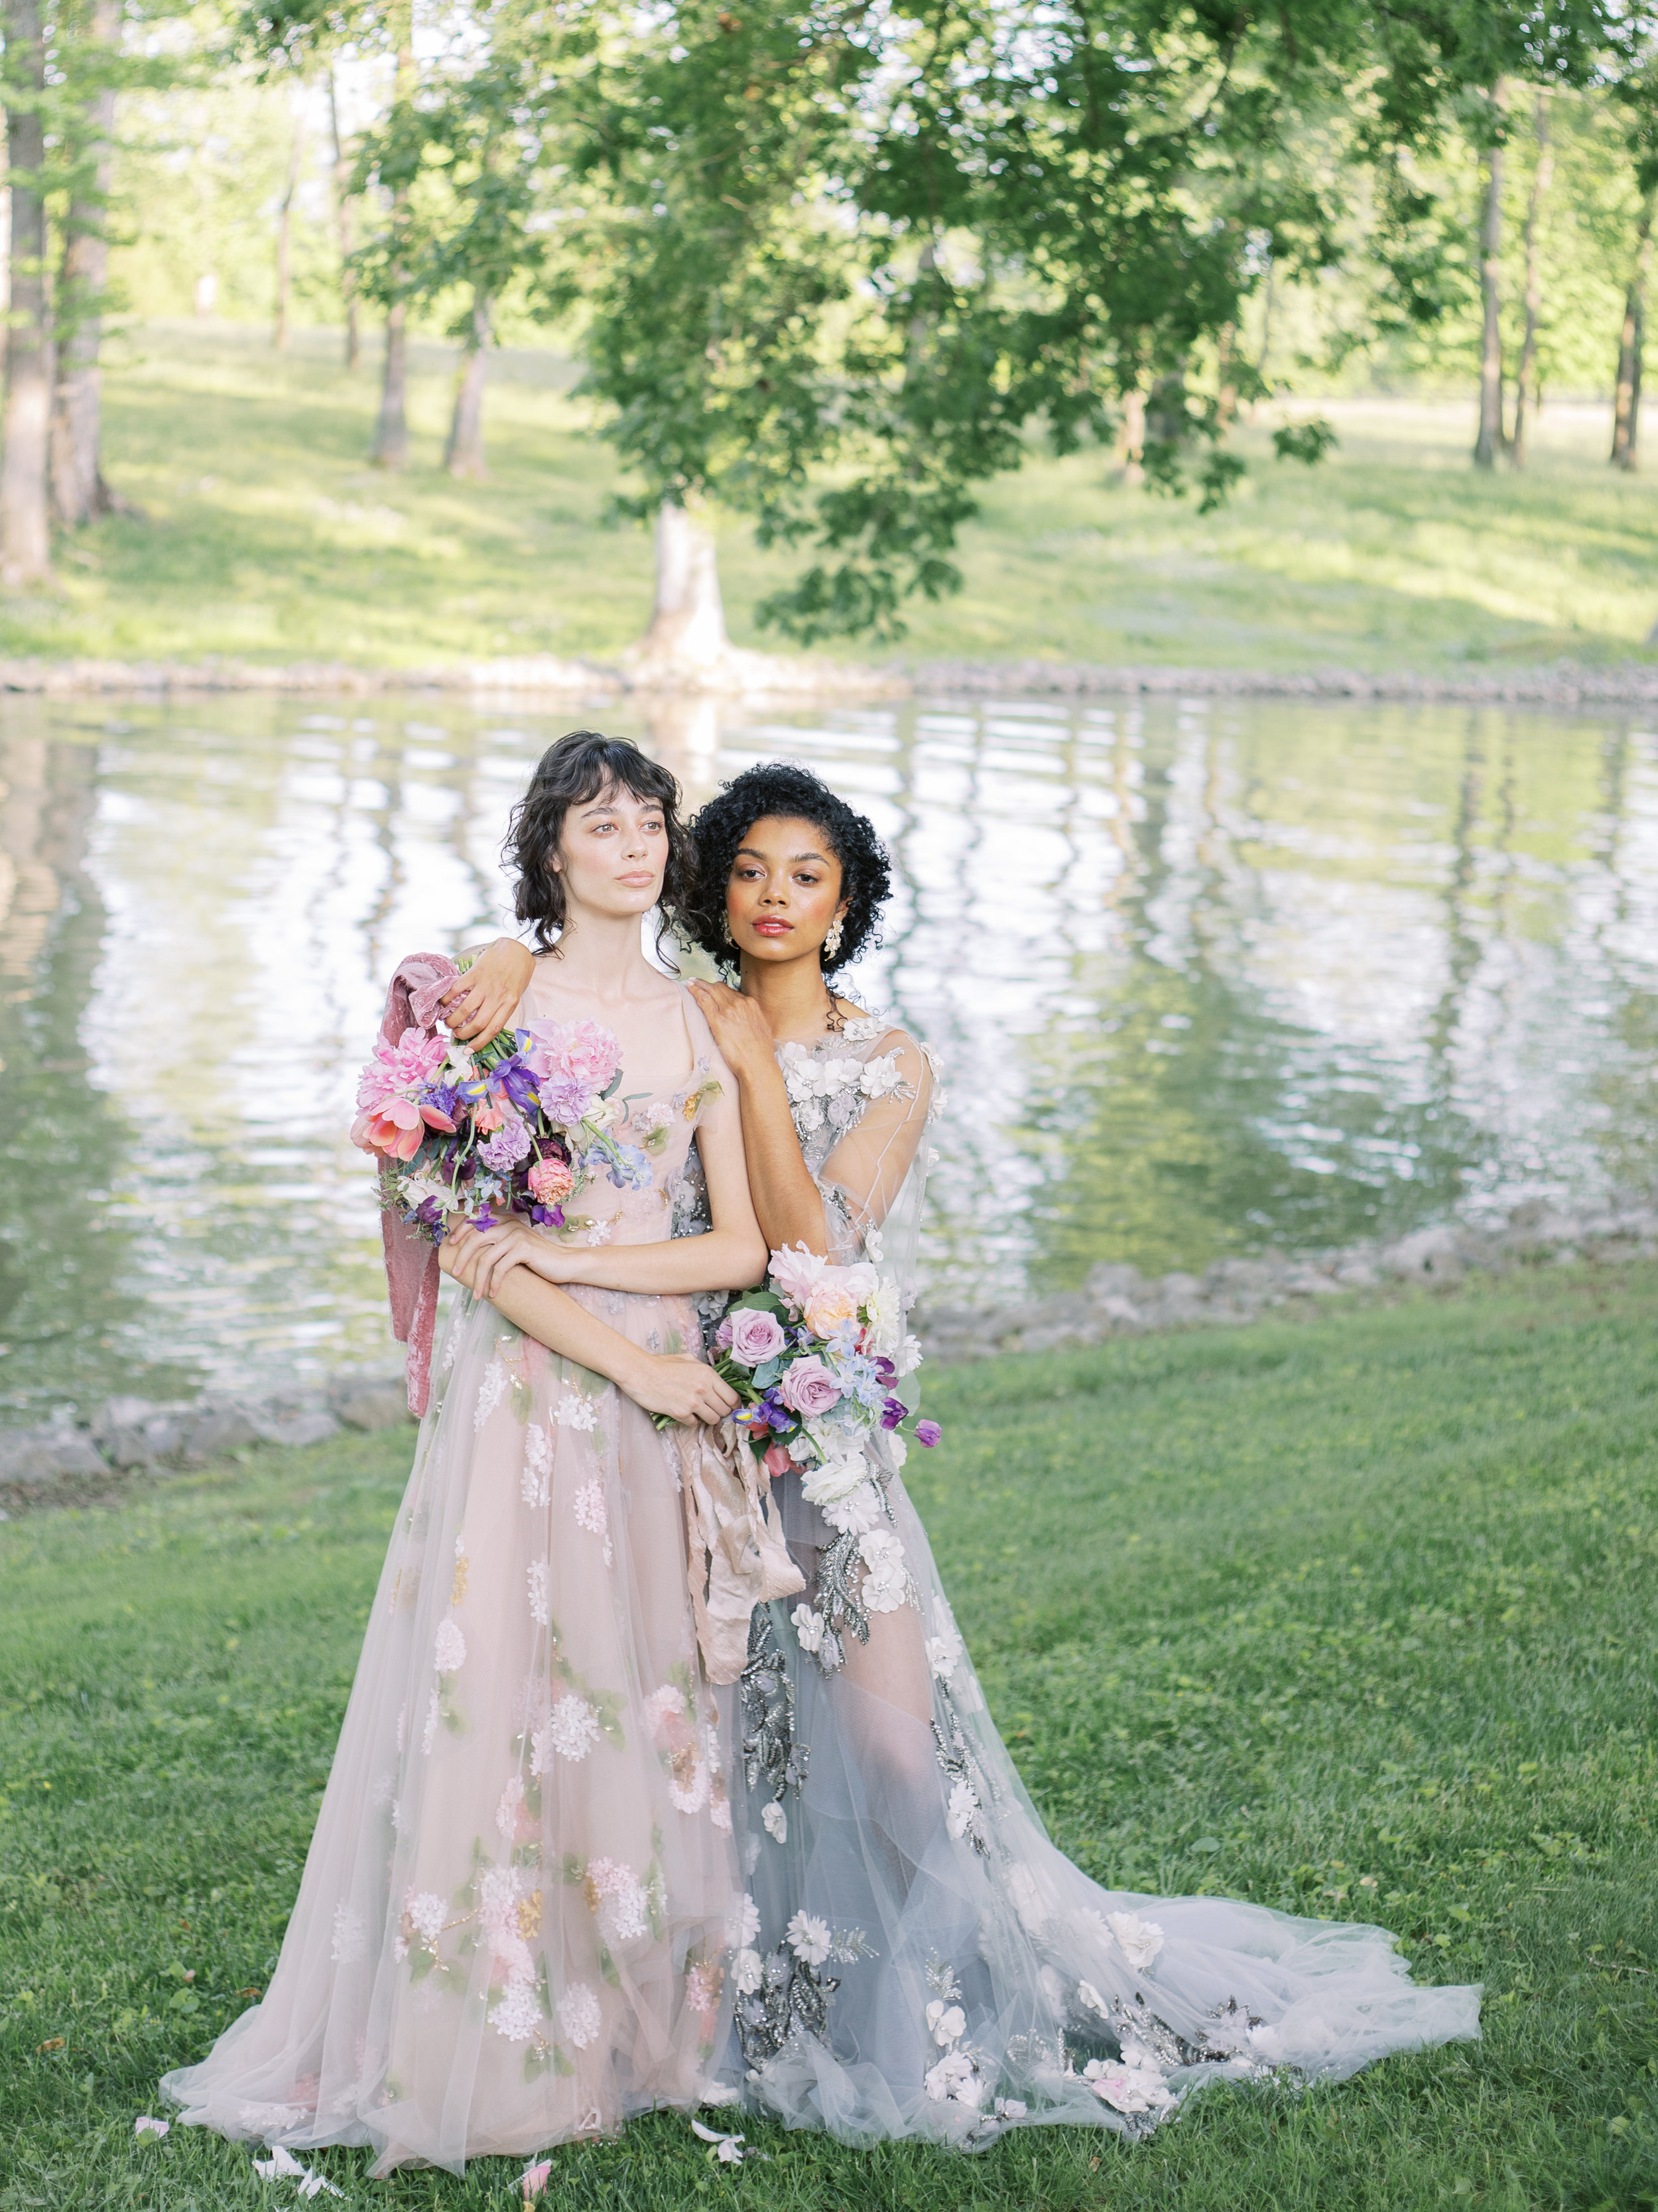 Faith Roper Photography and East Made Co Nashville wedding planner at the Estate at Cherokee Dock wedding inspired by Monet Hybrid Co-66.jpg